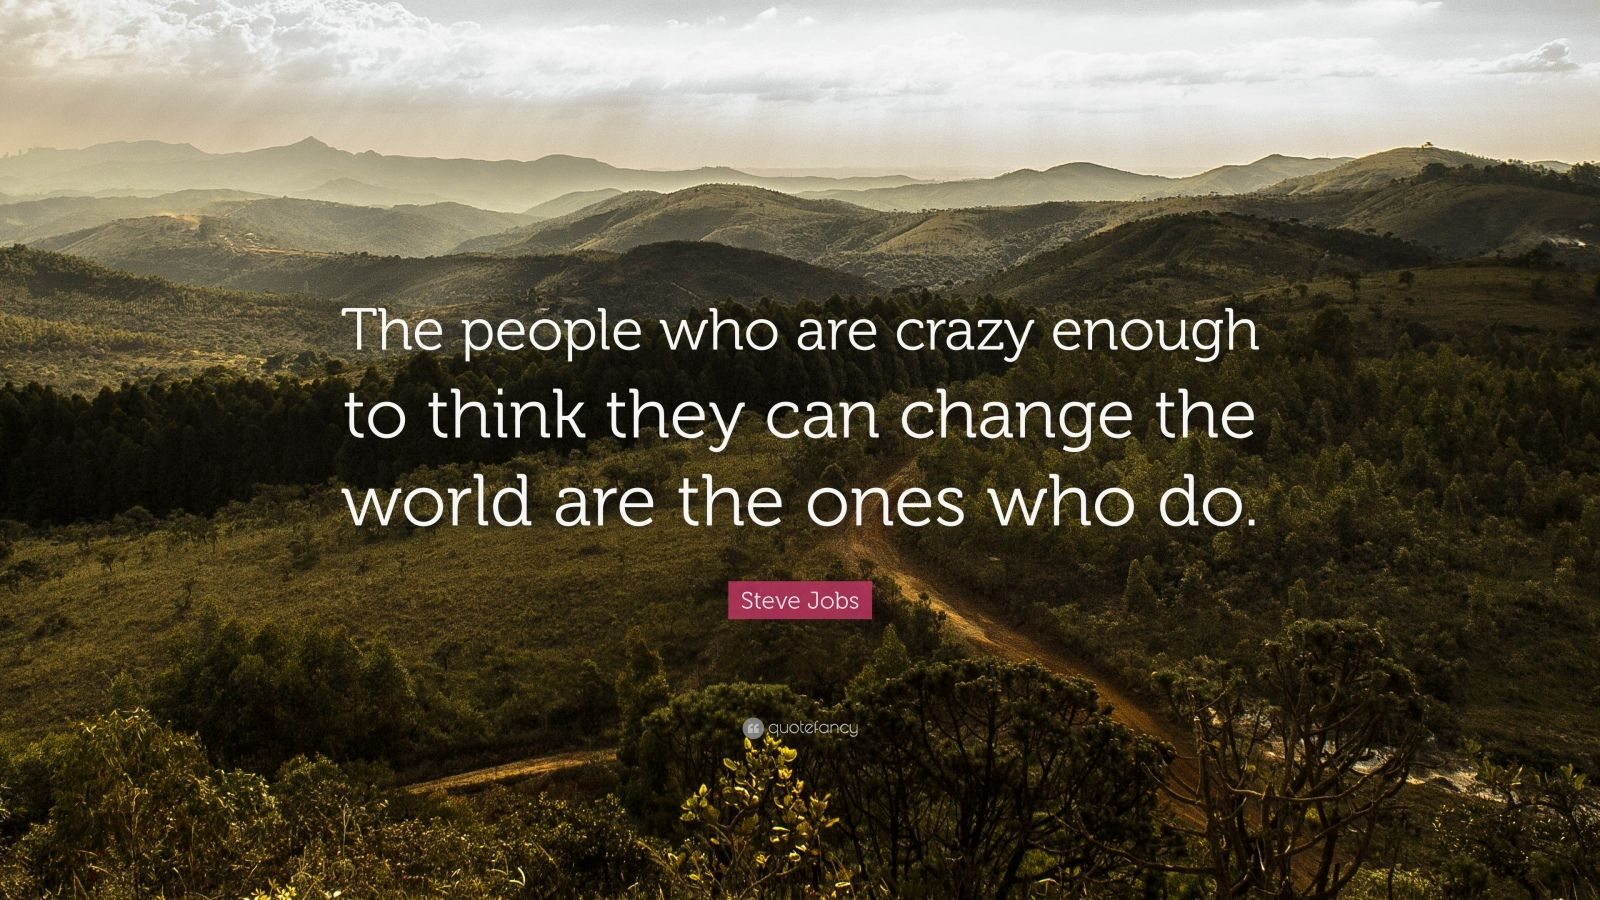 Steve Jobs Quote The People Who Are Crazy Enough To Think They Can Change